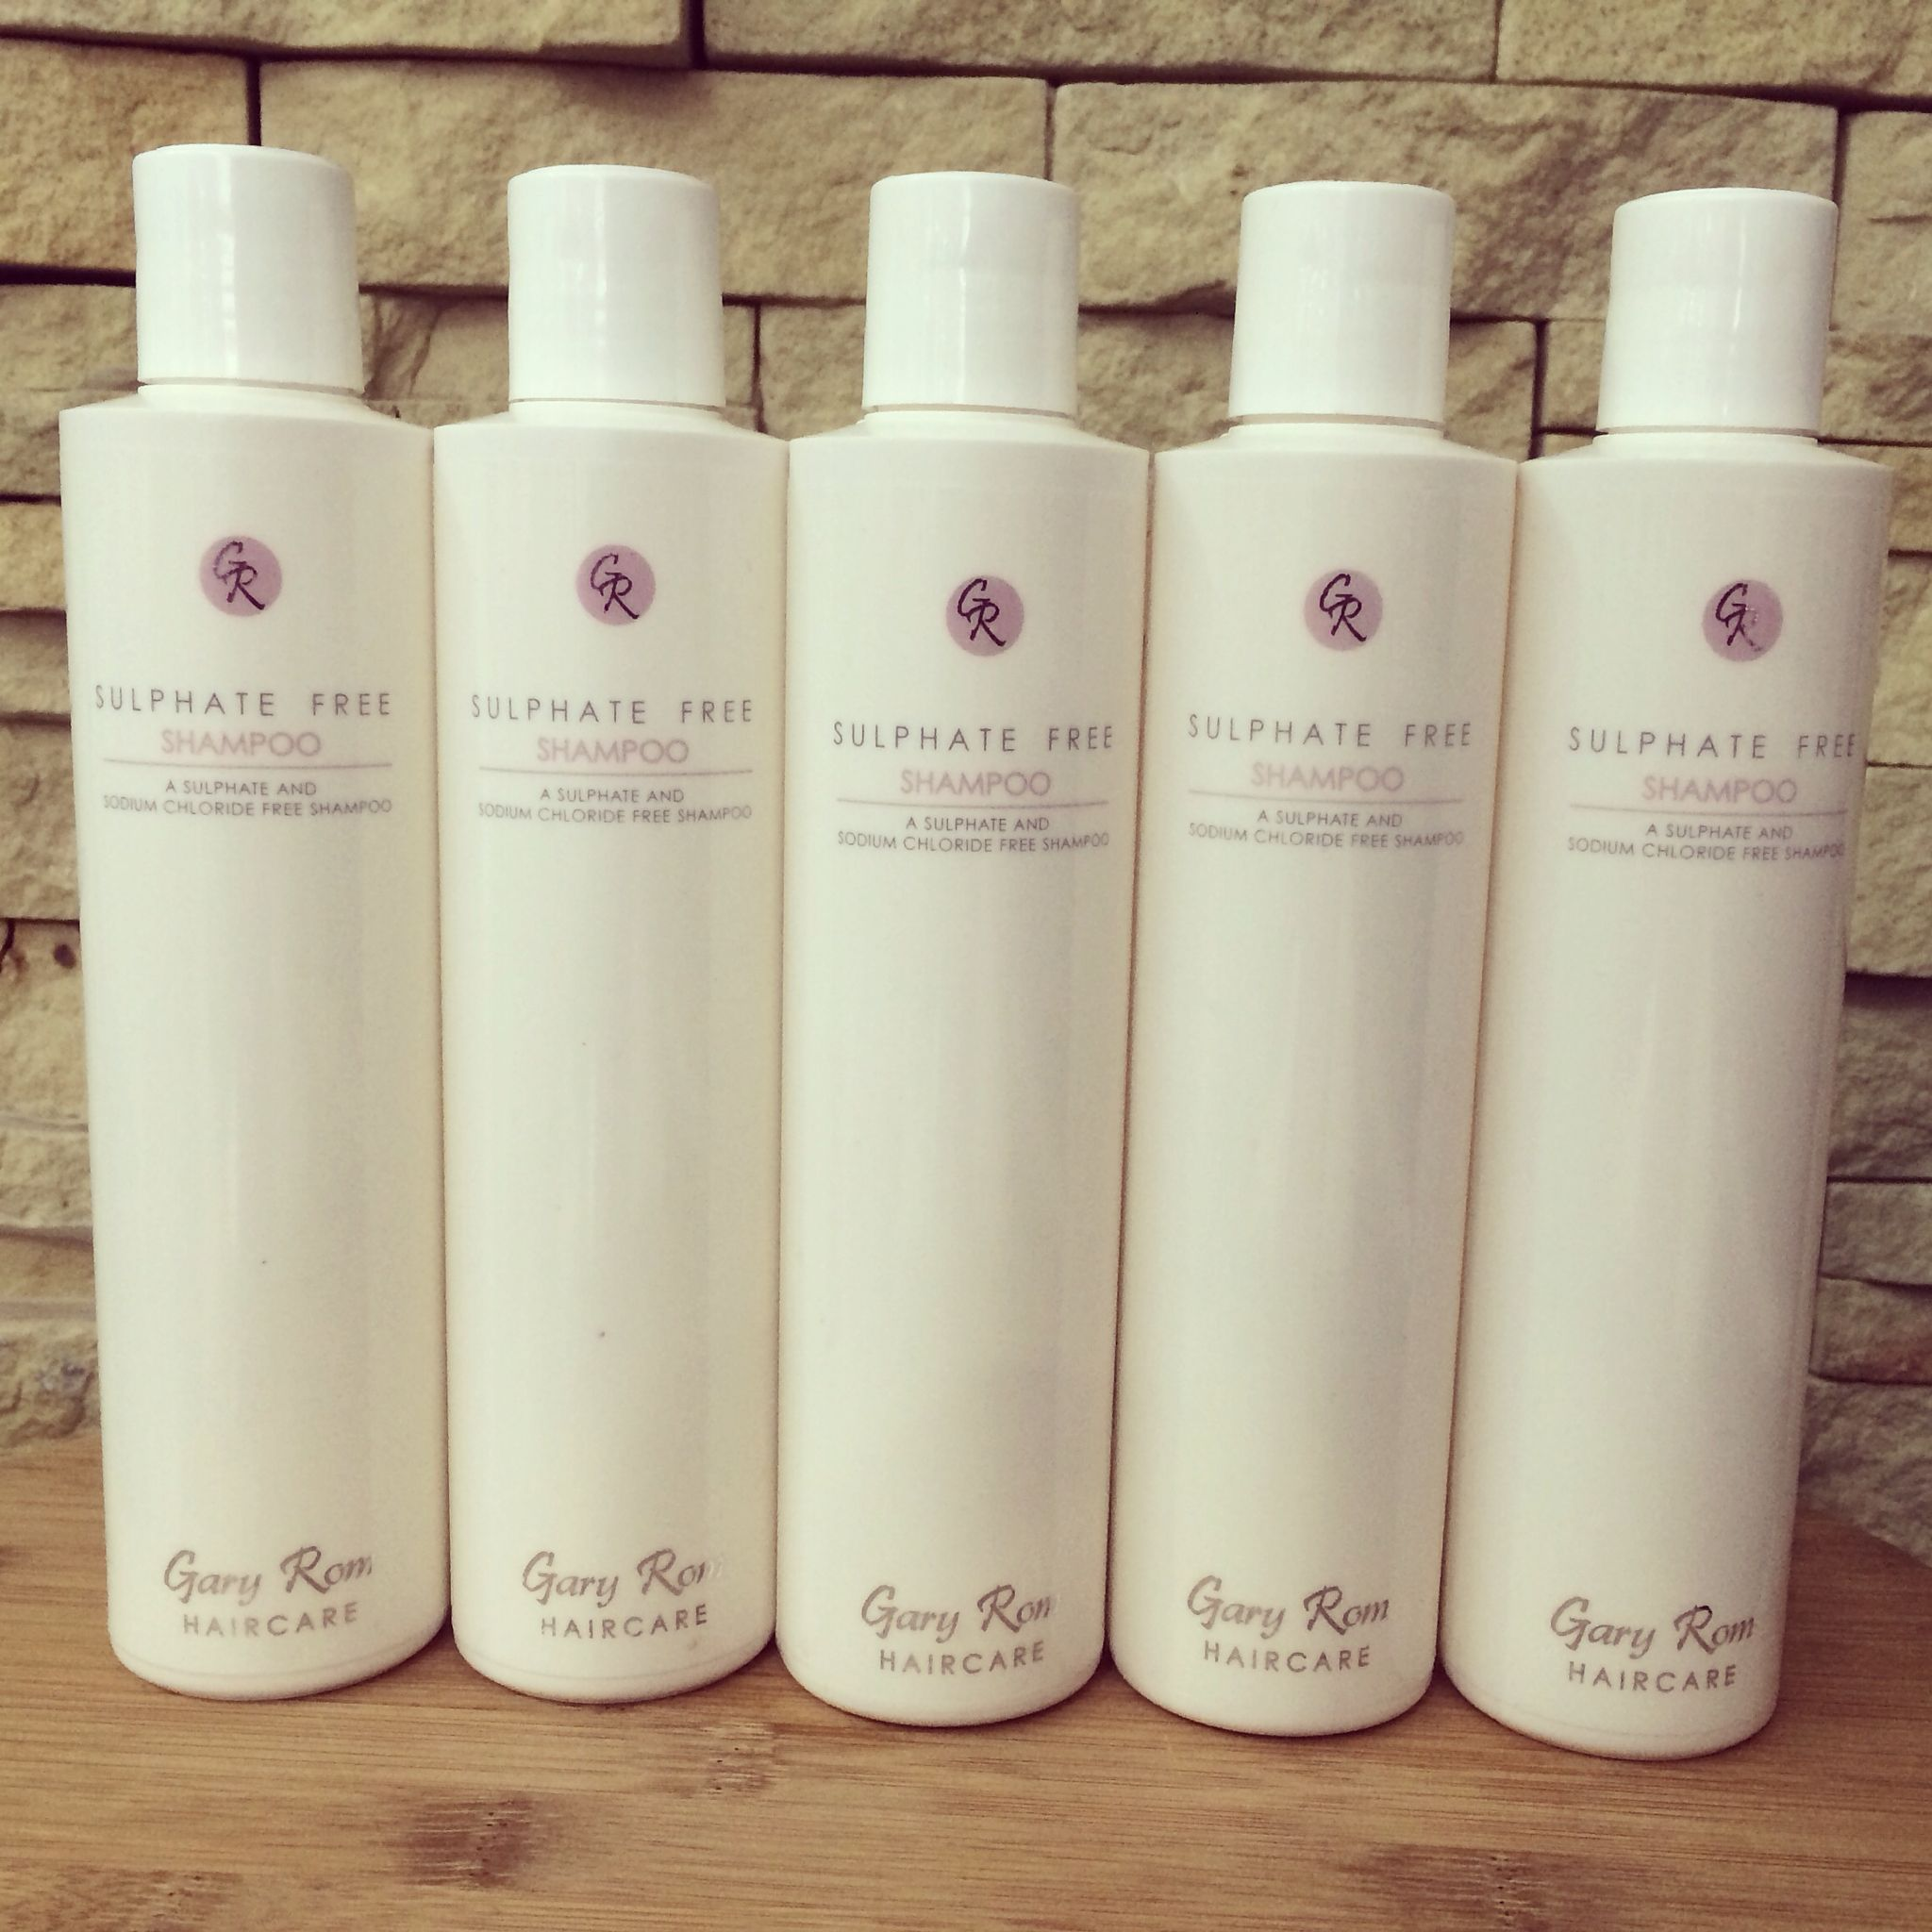 Gary rom haircare sulphate free shampoo a sulphate and